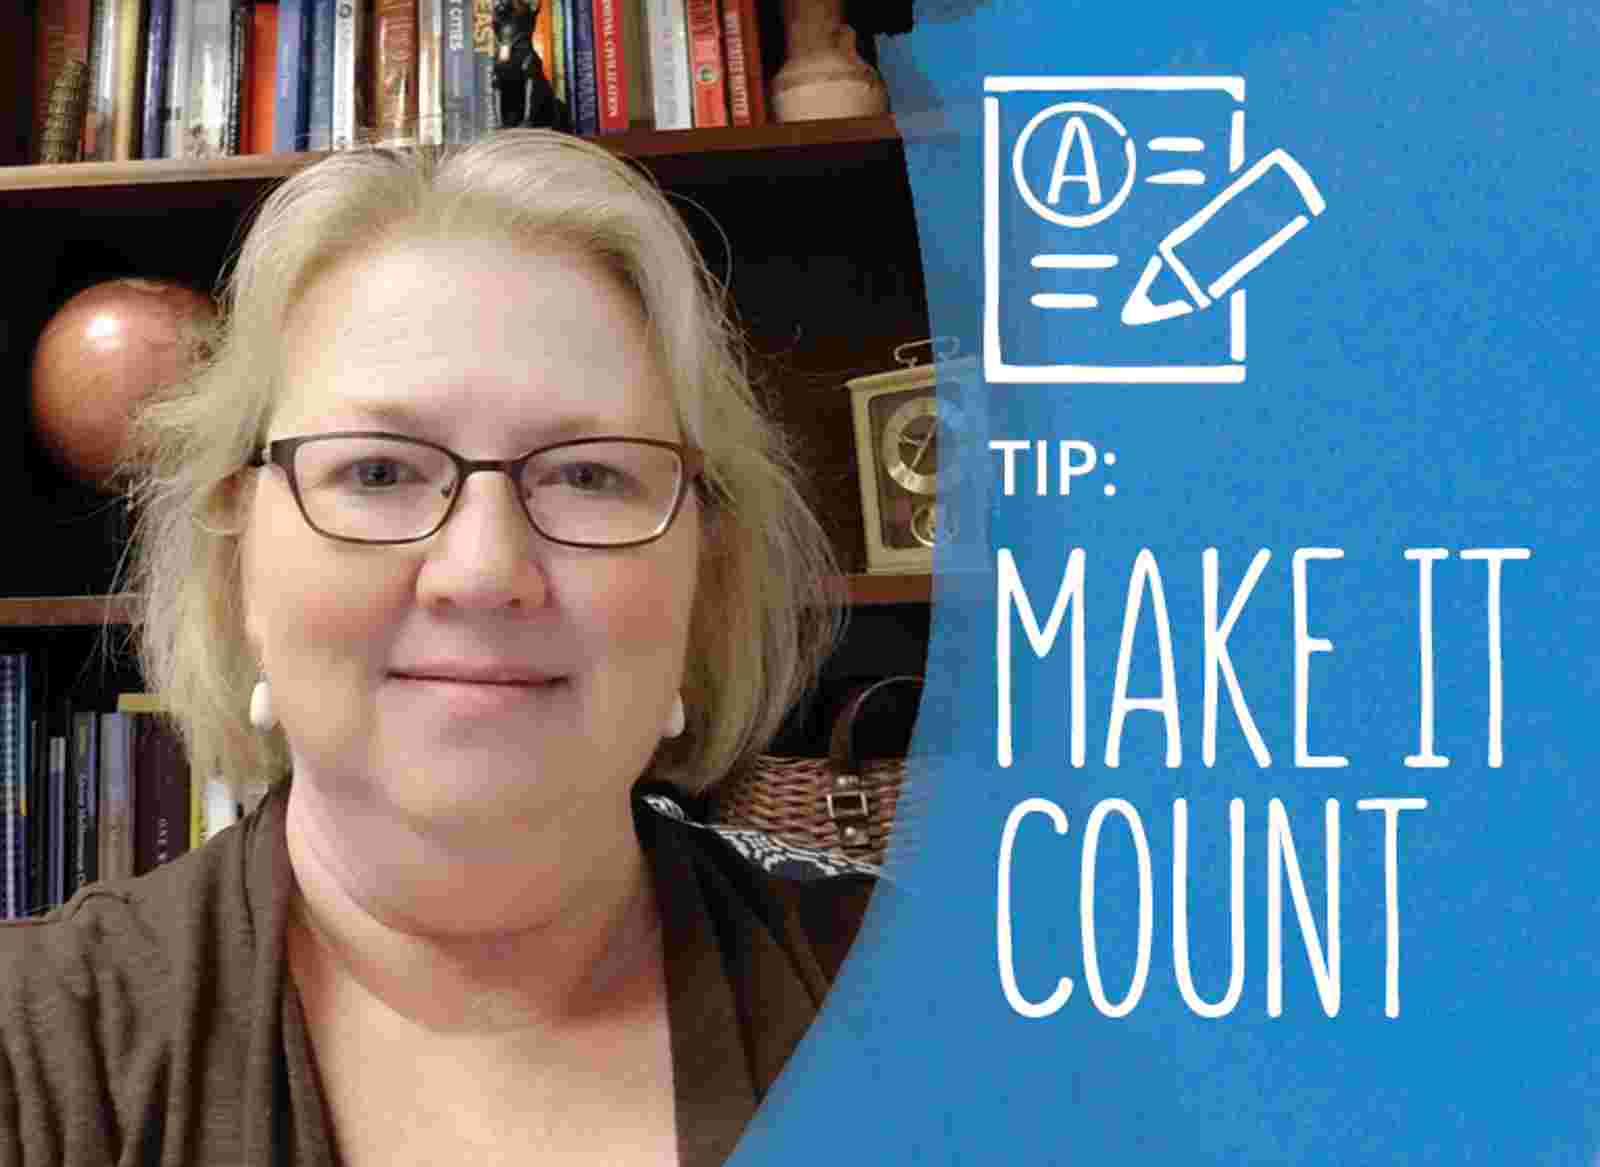 Tip: Make It Count